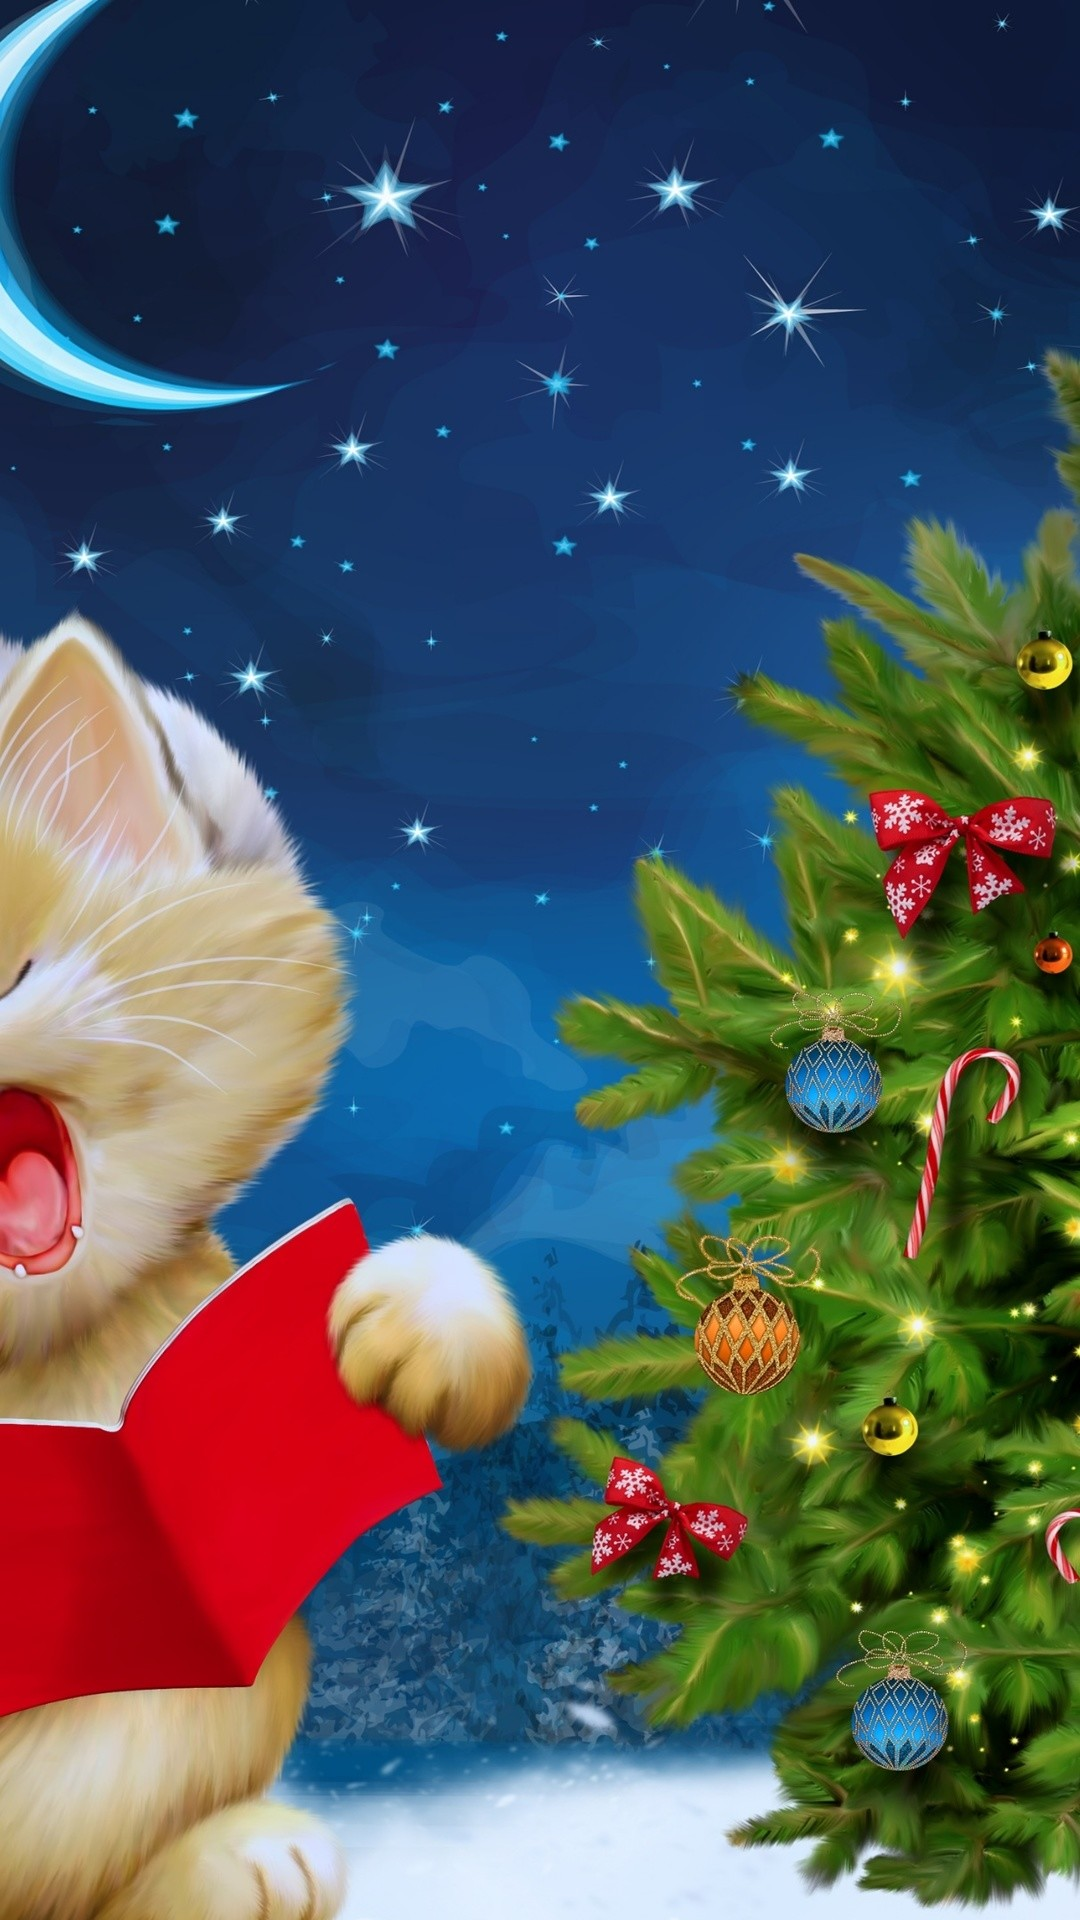 526 best images about Christmas cellphone wallpapers on Pinterest .